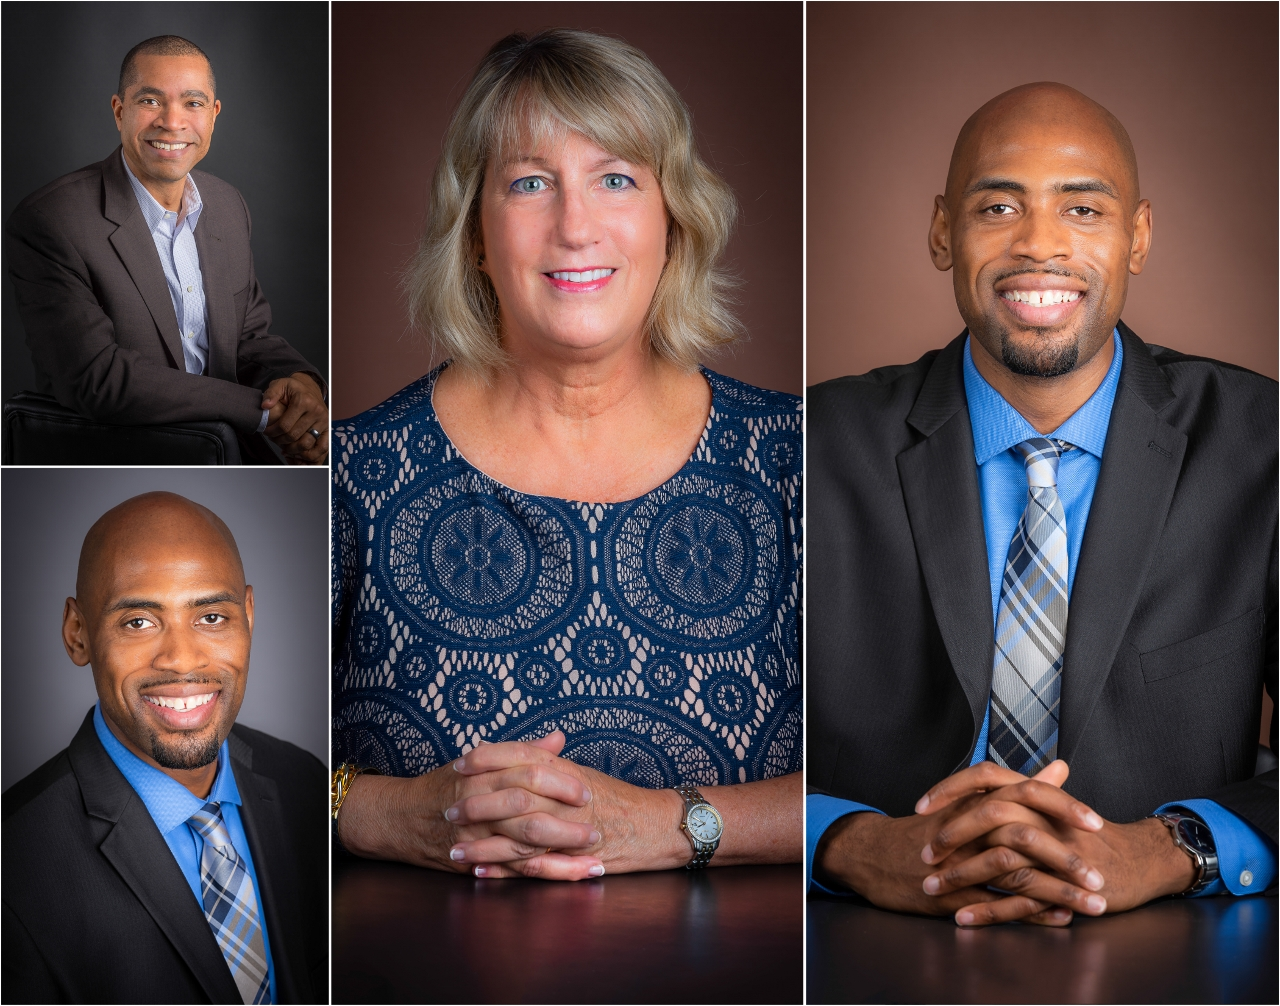 Portraits and Head Shots for business and social media - Ann Arbor, Ypsilanti and Southeastern Michigan